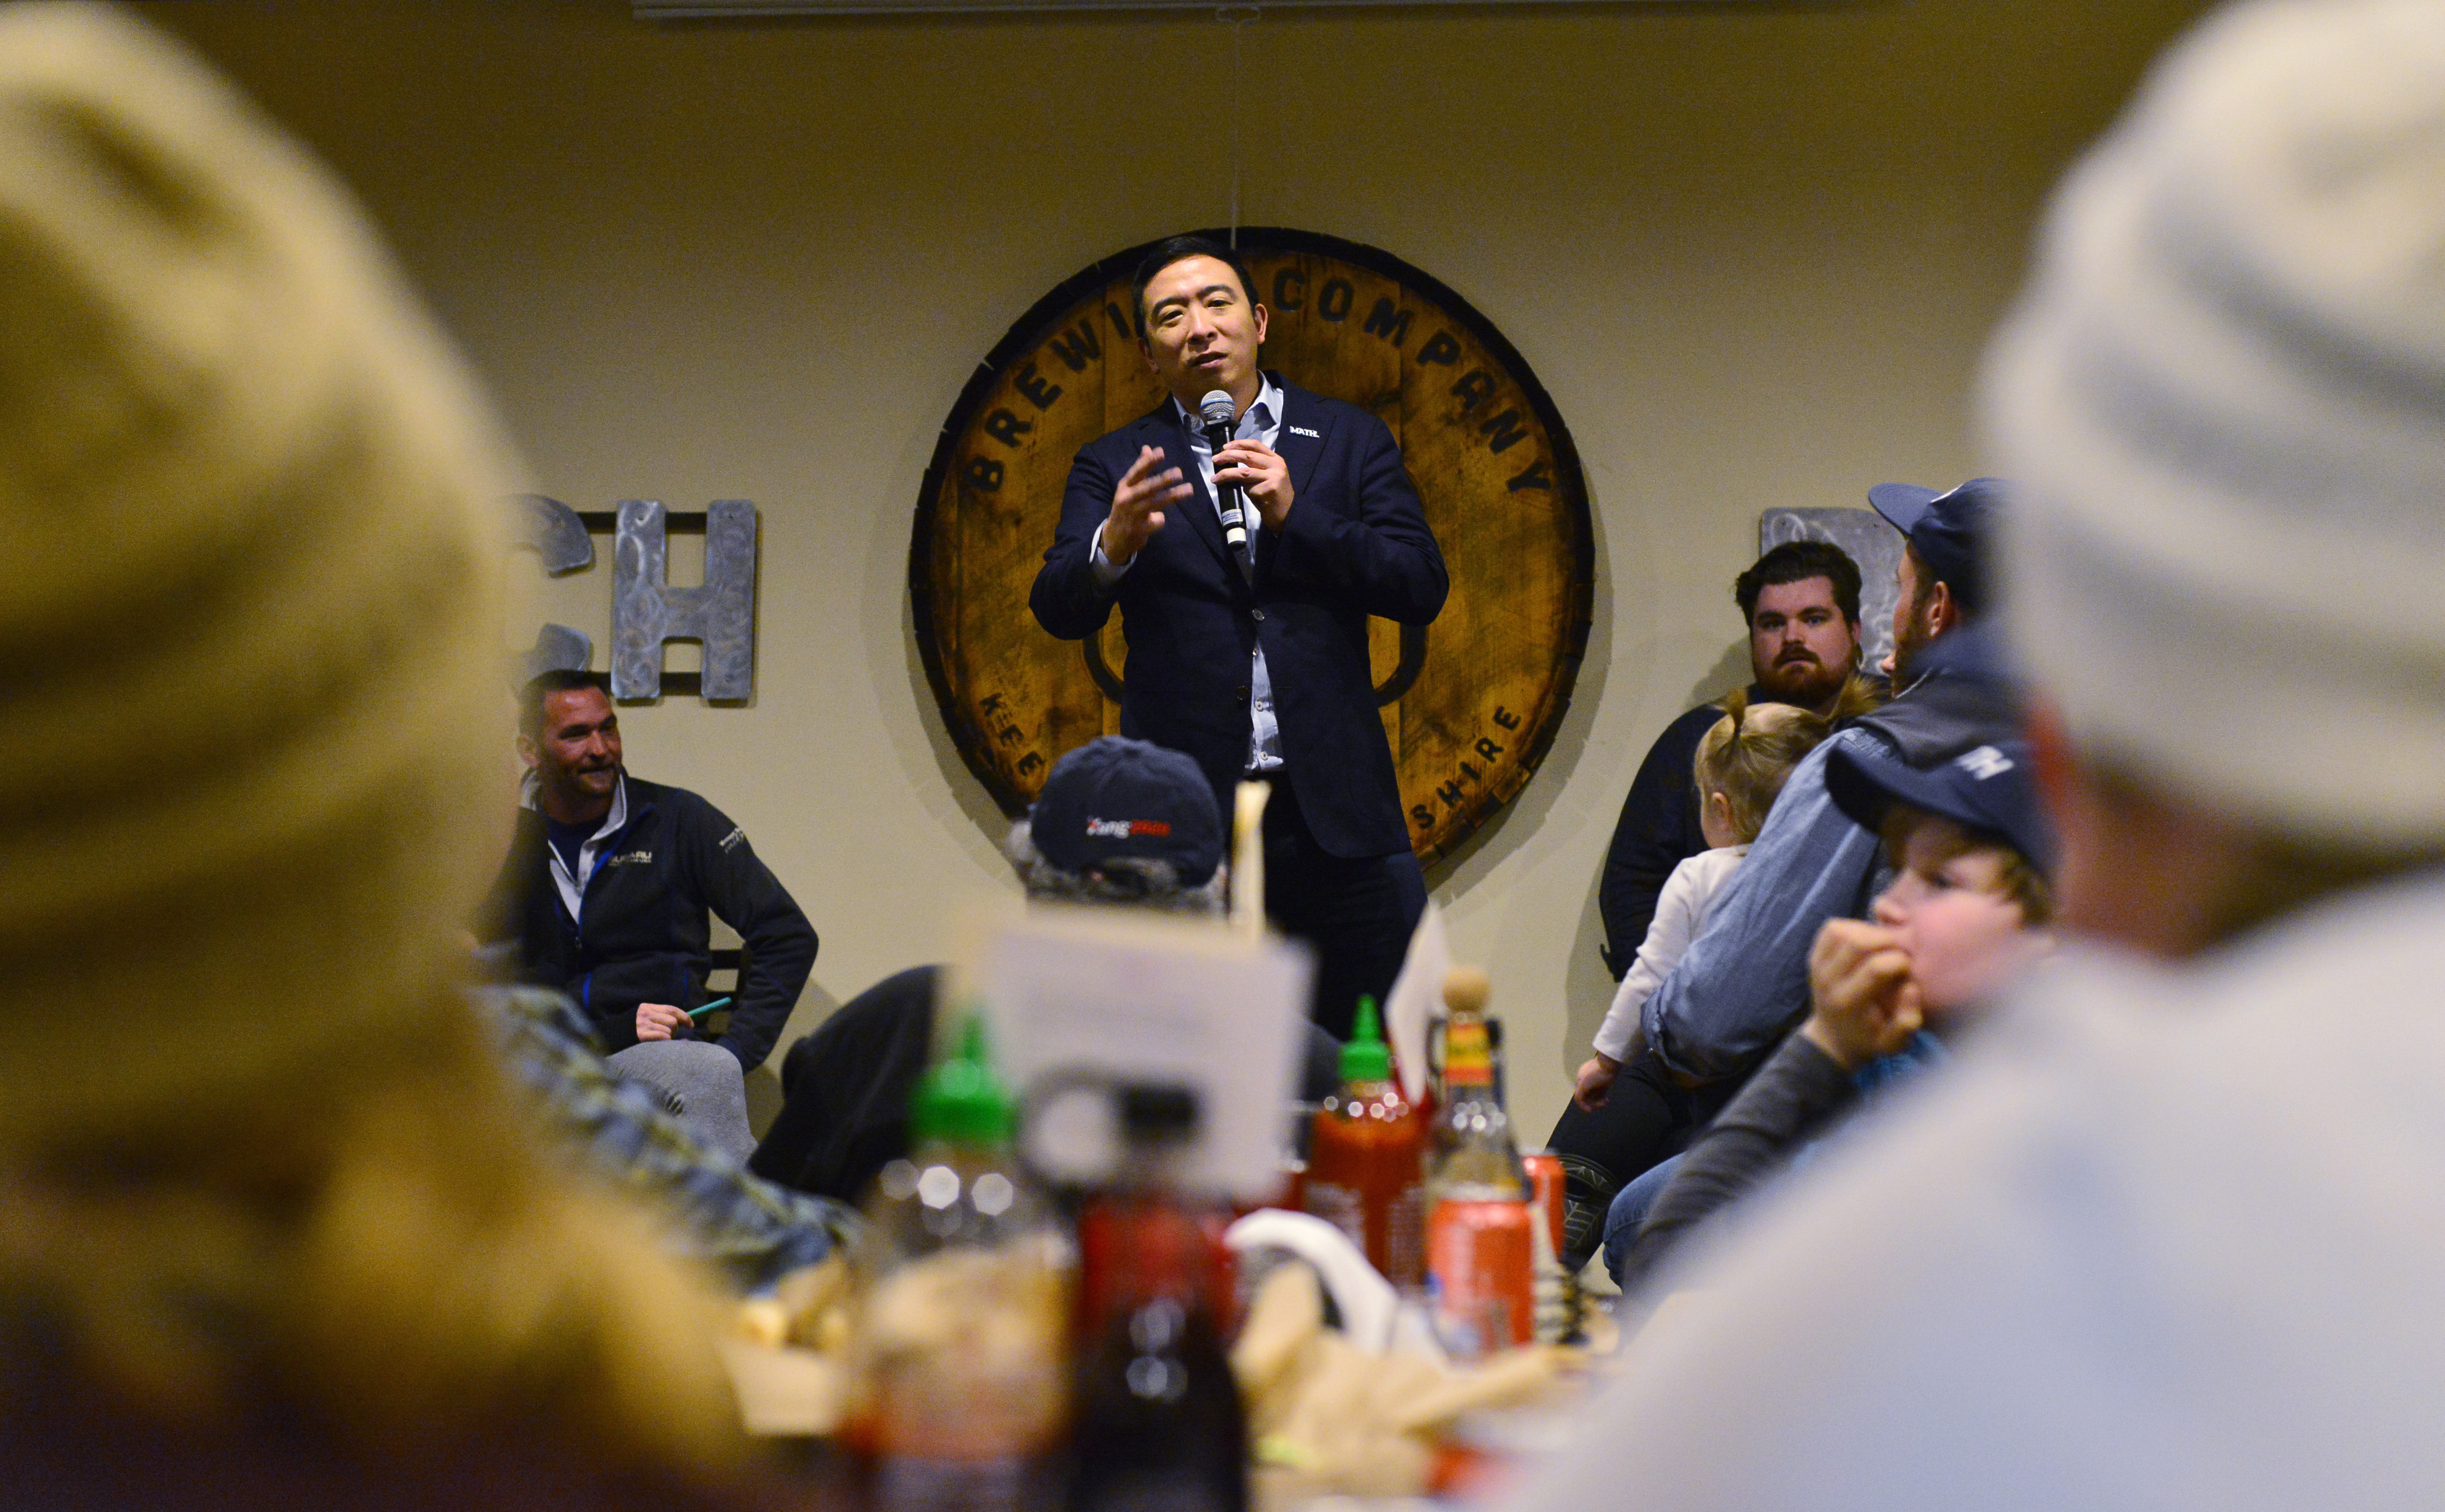 Andrew Yang campaign says FBI alerted over emailed threats